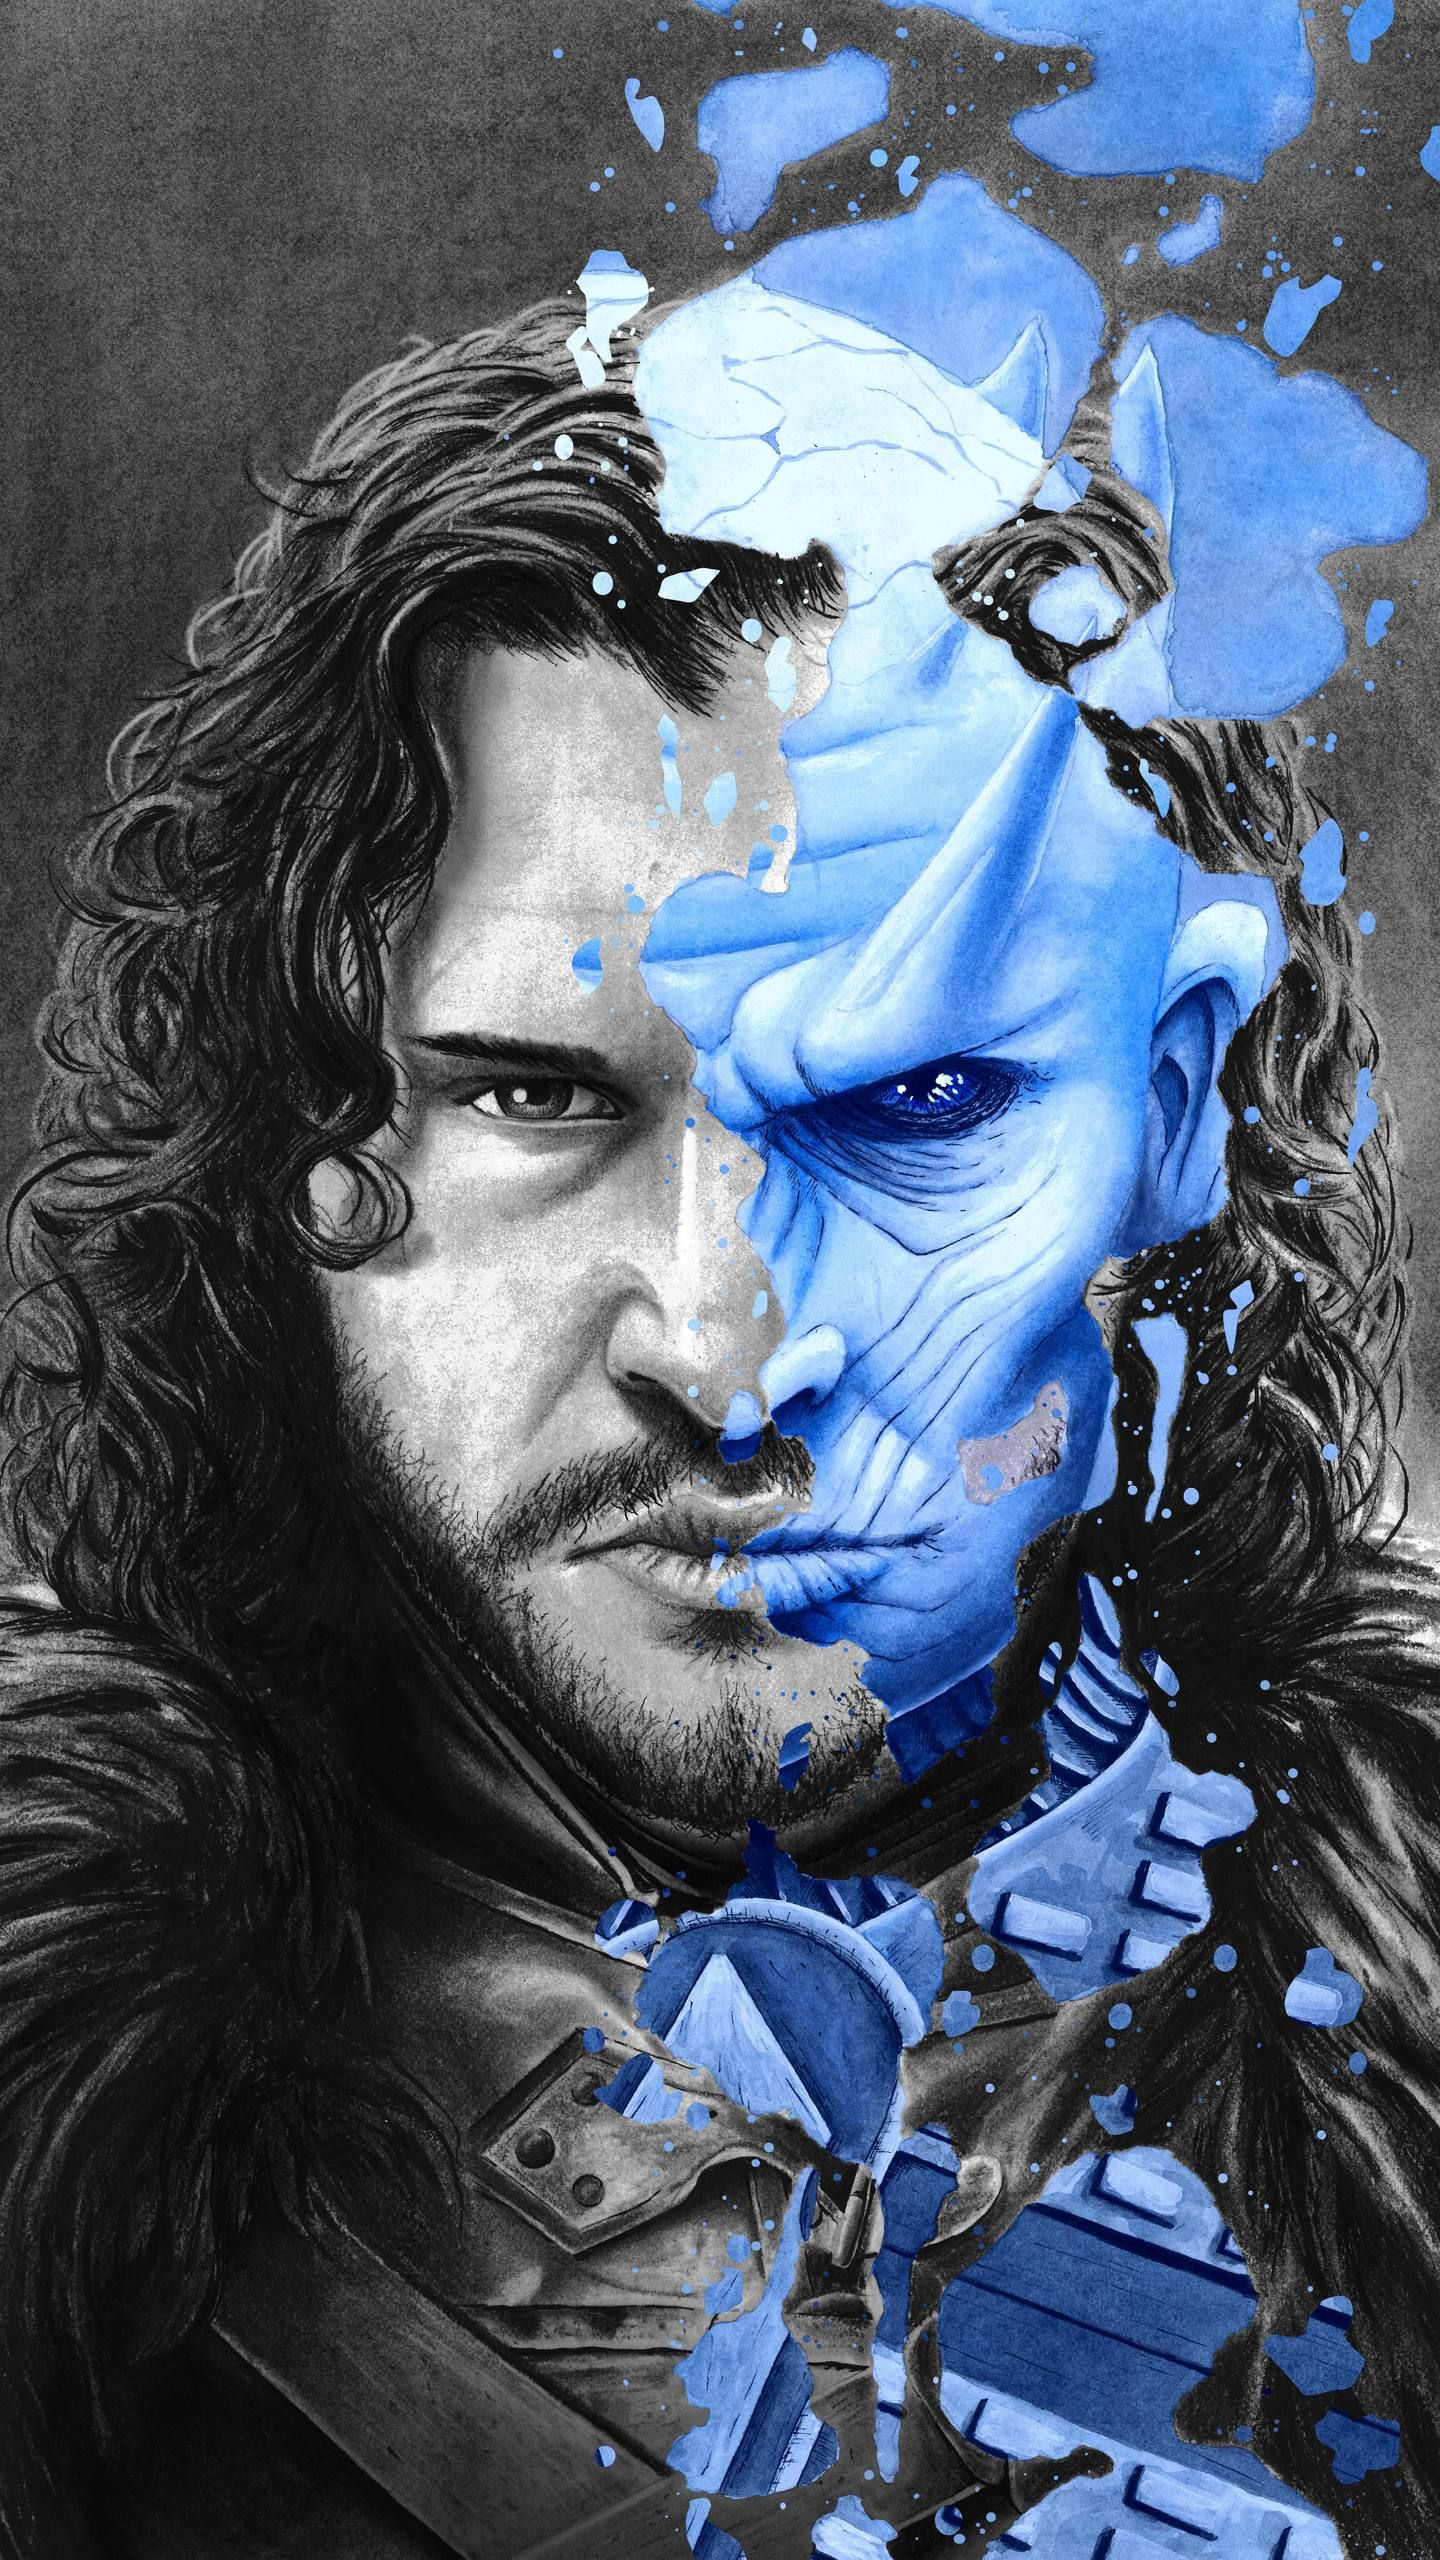 Free Download Game Of Thrones Wallpaper Jon Snow Night Kind